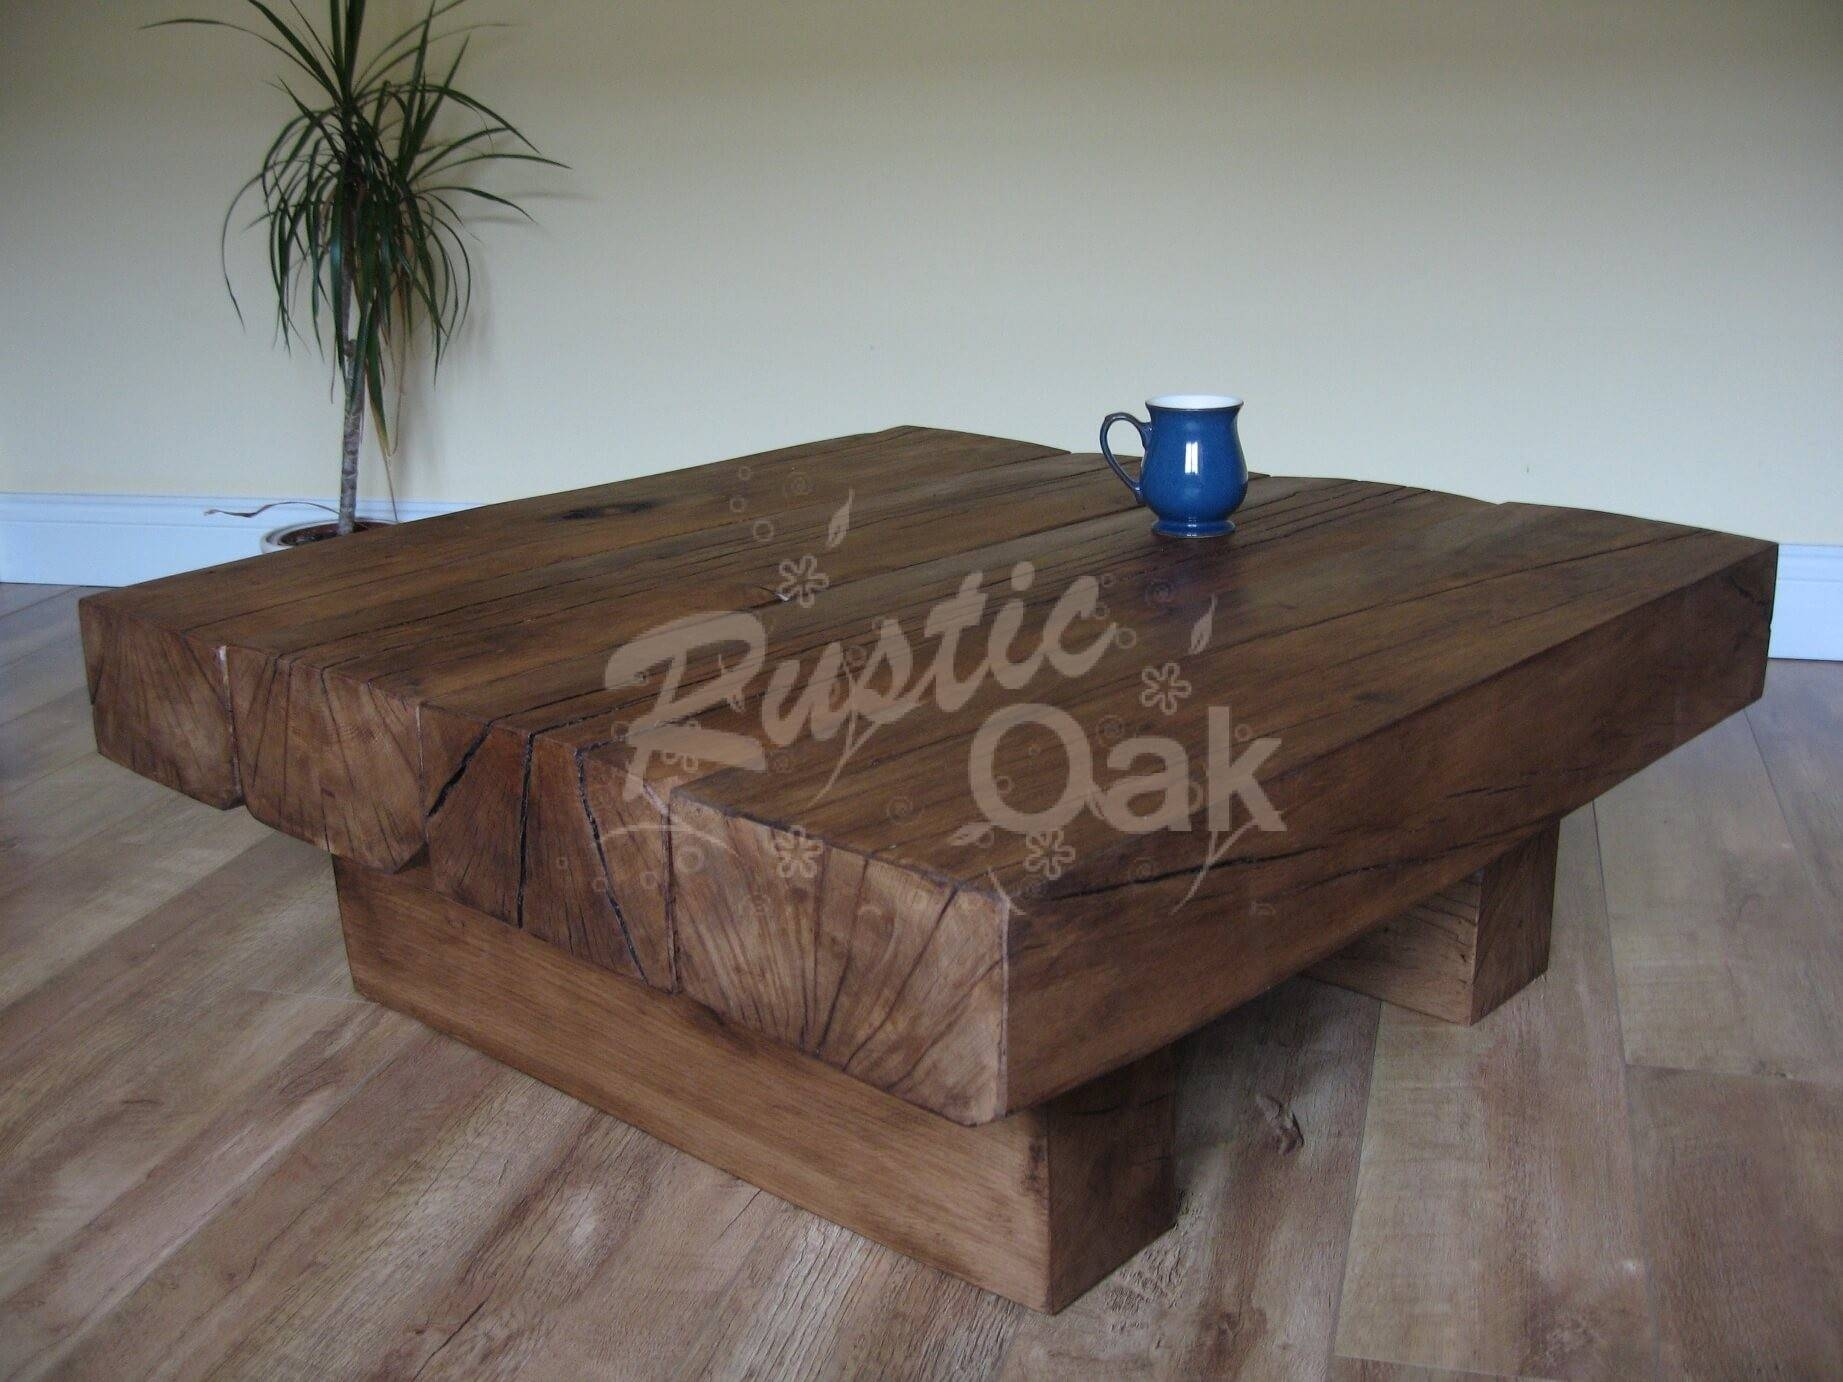 4 Beam Square Coffee Table - Rustic Oak throughout Oak Beam Coffee Tables (Image 3 of 15)